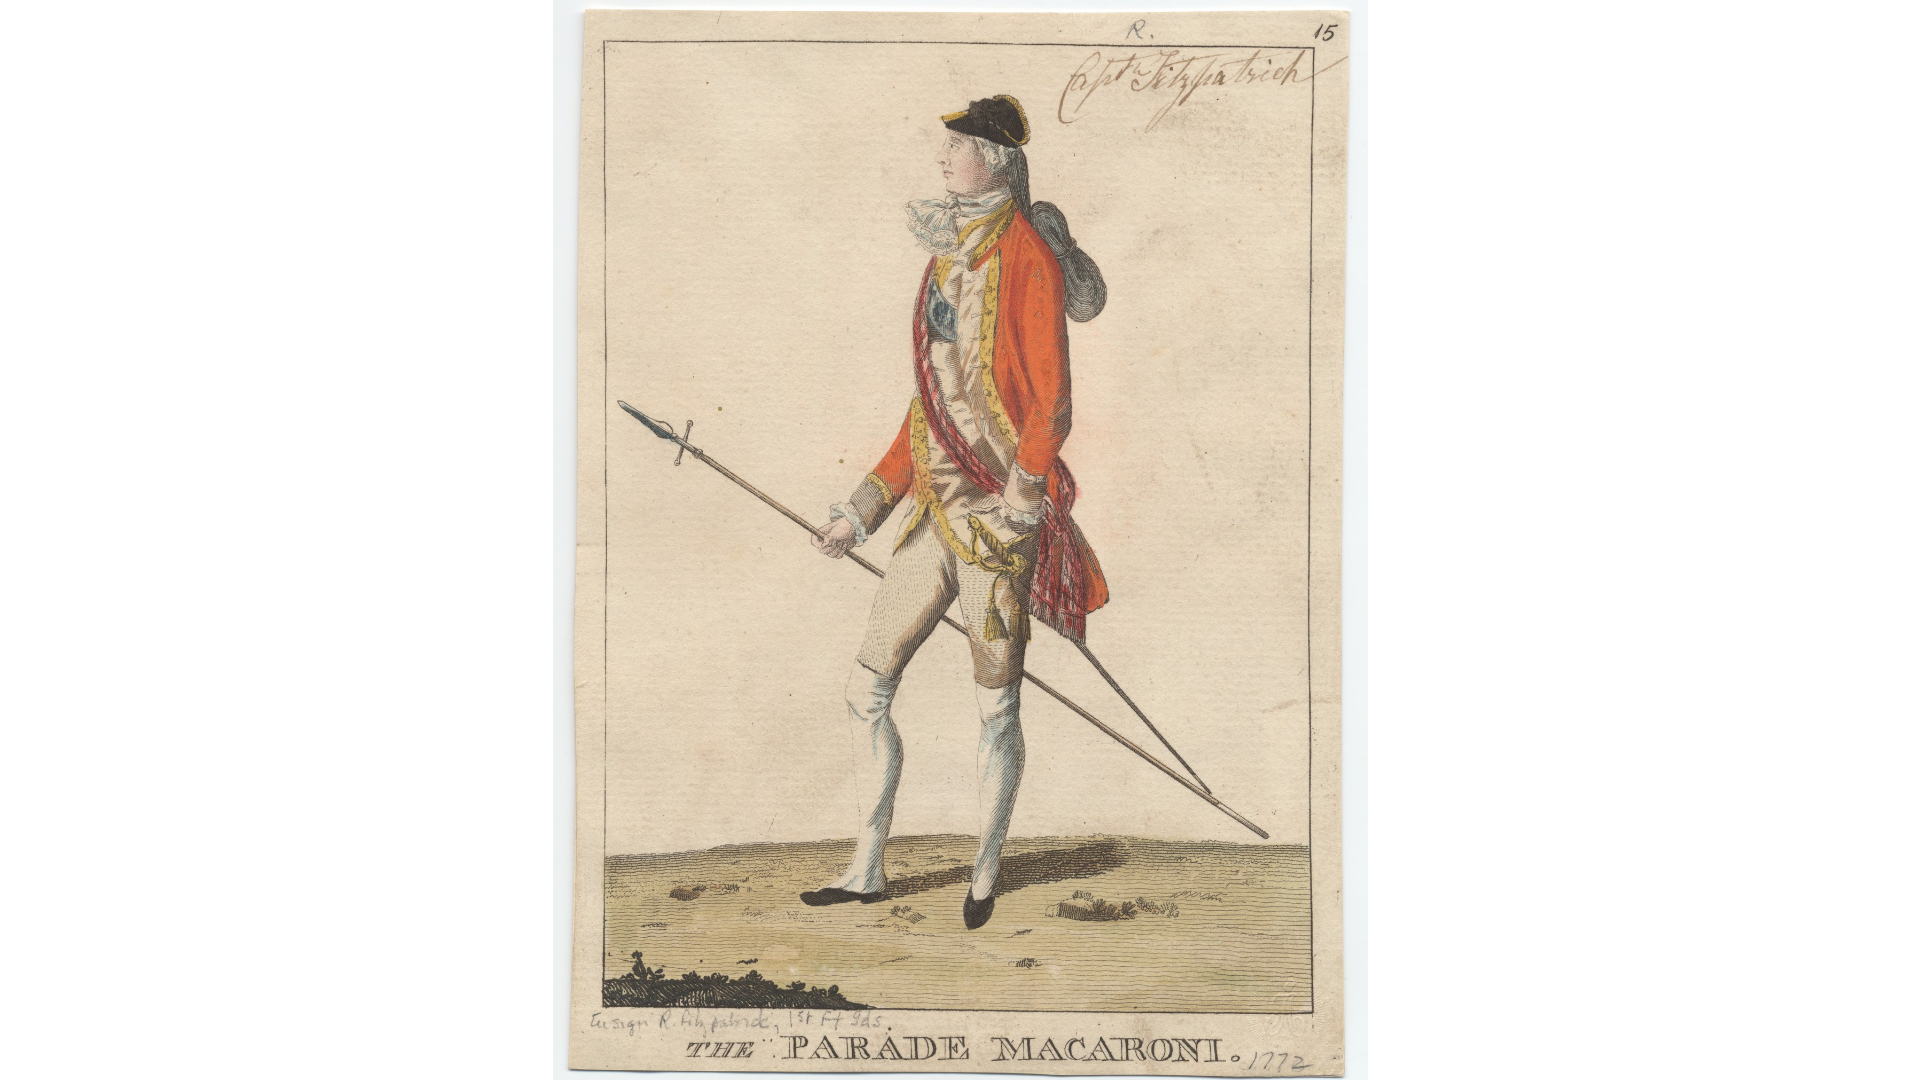 """Clubbed Hair - Darly, Mary, """"The parade macaroni"""" (1772). Prints, Drawings and Watercolors from the Anne S.K. Brown Military Collection. Brown Digital Repository. Brown University Library."""